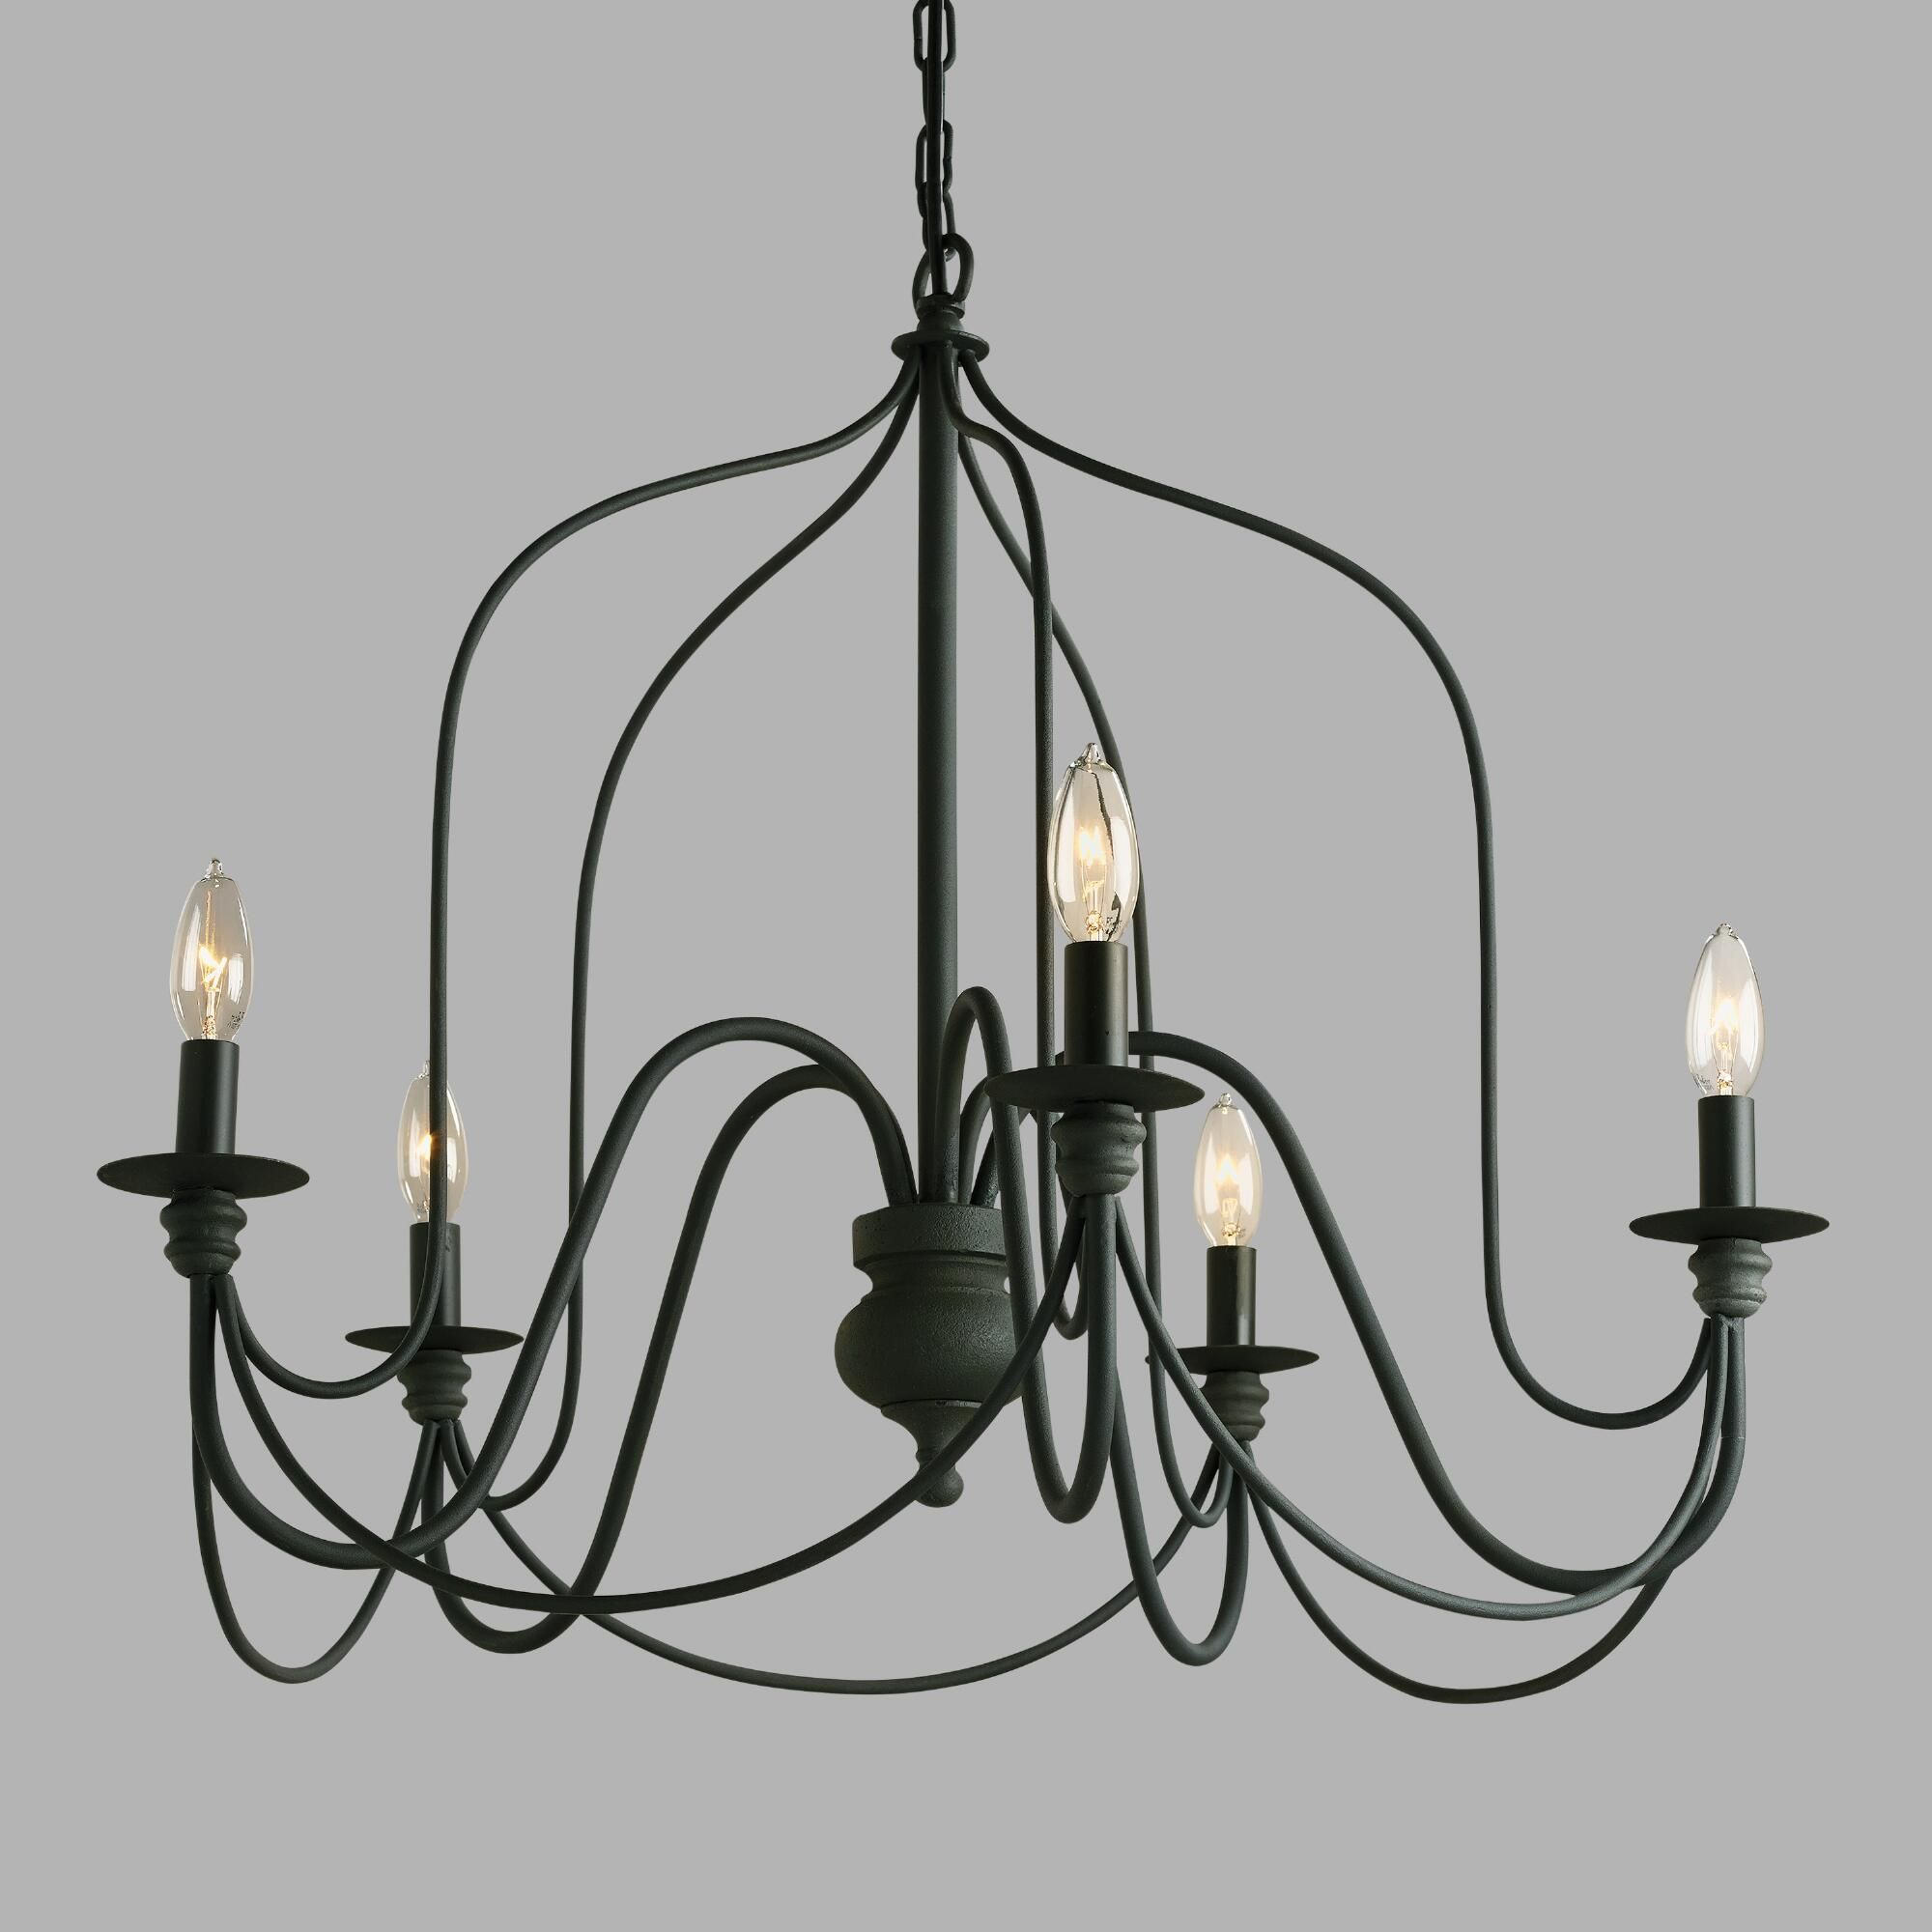 Our exclusive rustic wire chandelier features a slender silhouette our exclusive rustic wire chandelier features a slender silhouette inspired by vintage french chandeliers with mozeypictures Gallery